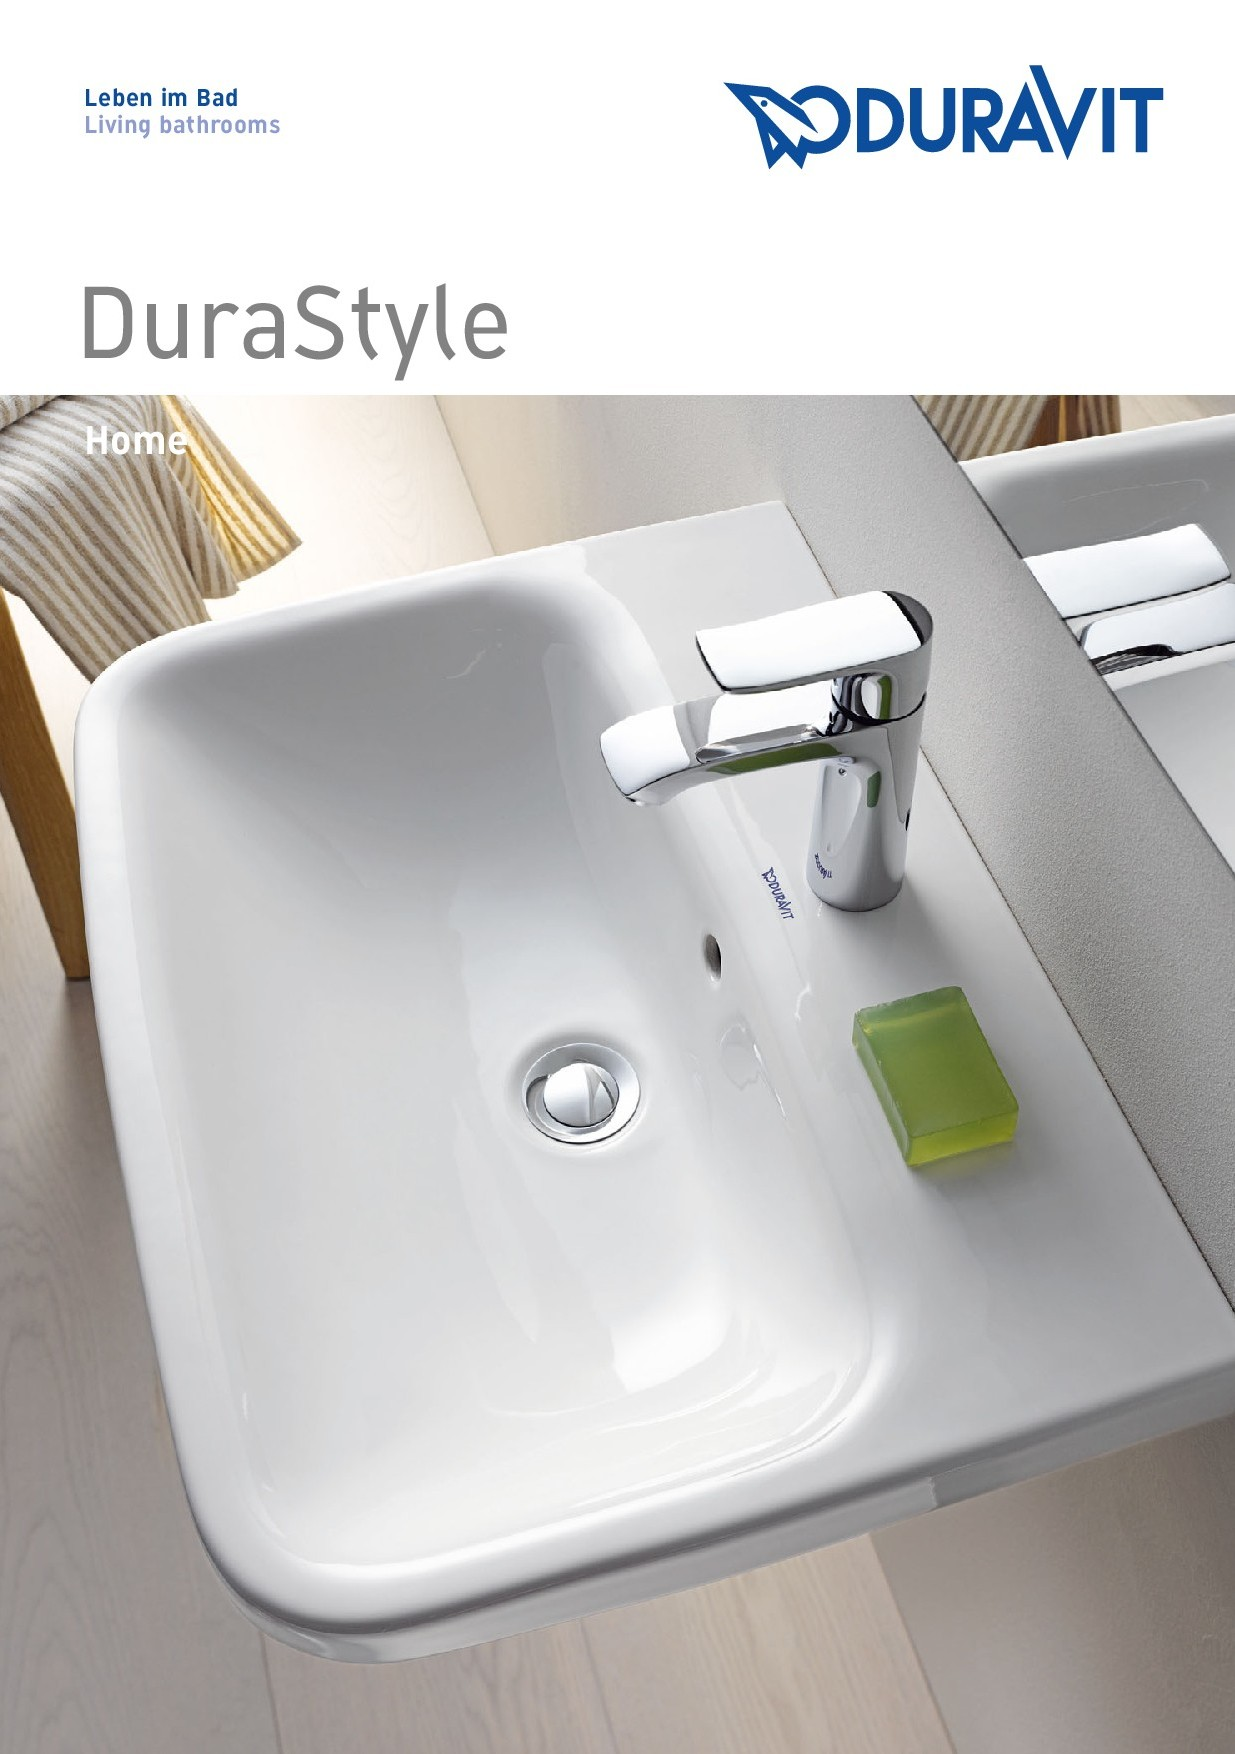 Duravit Products Catalogue